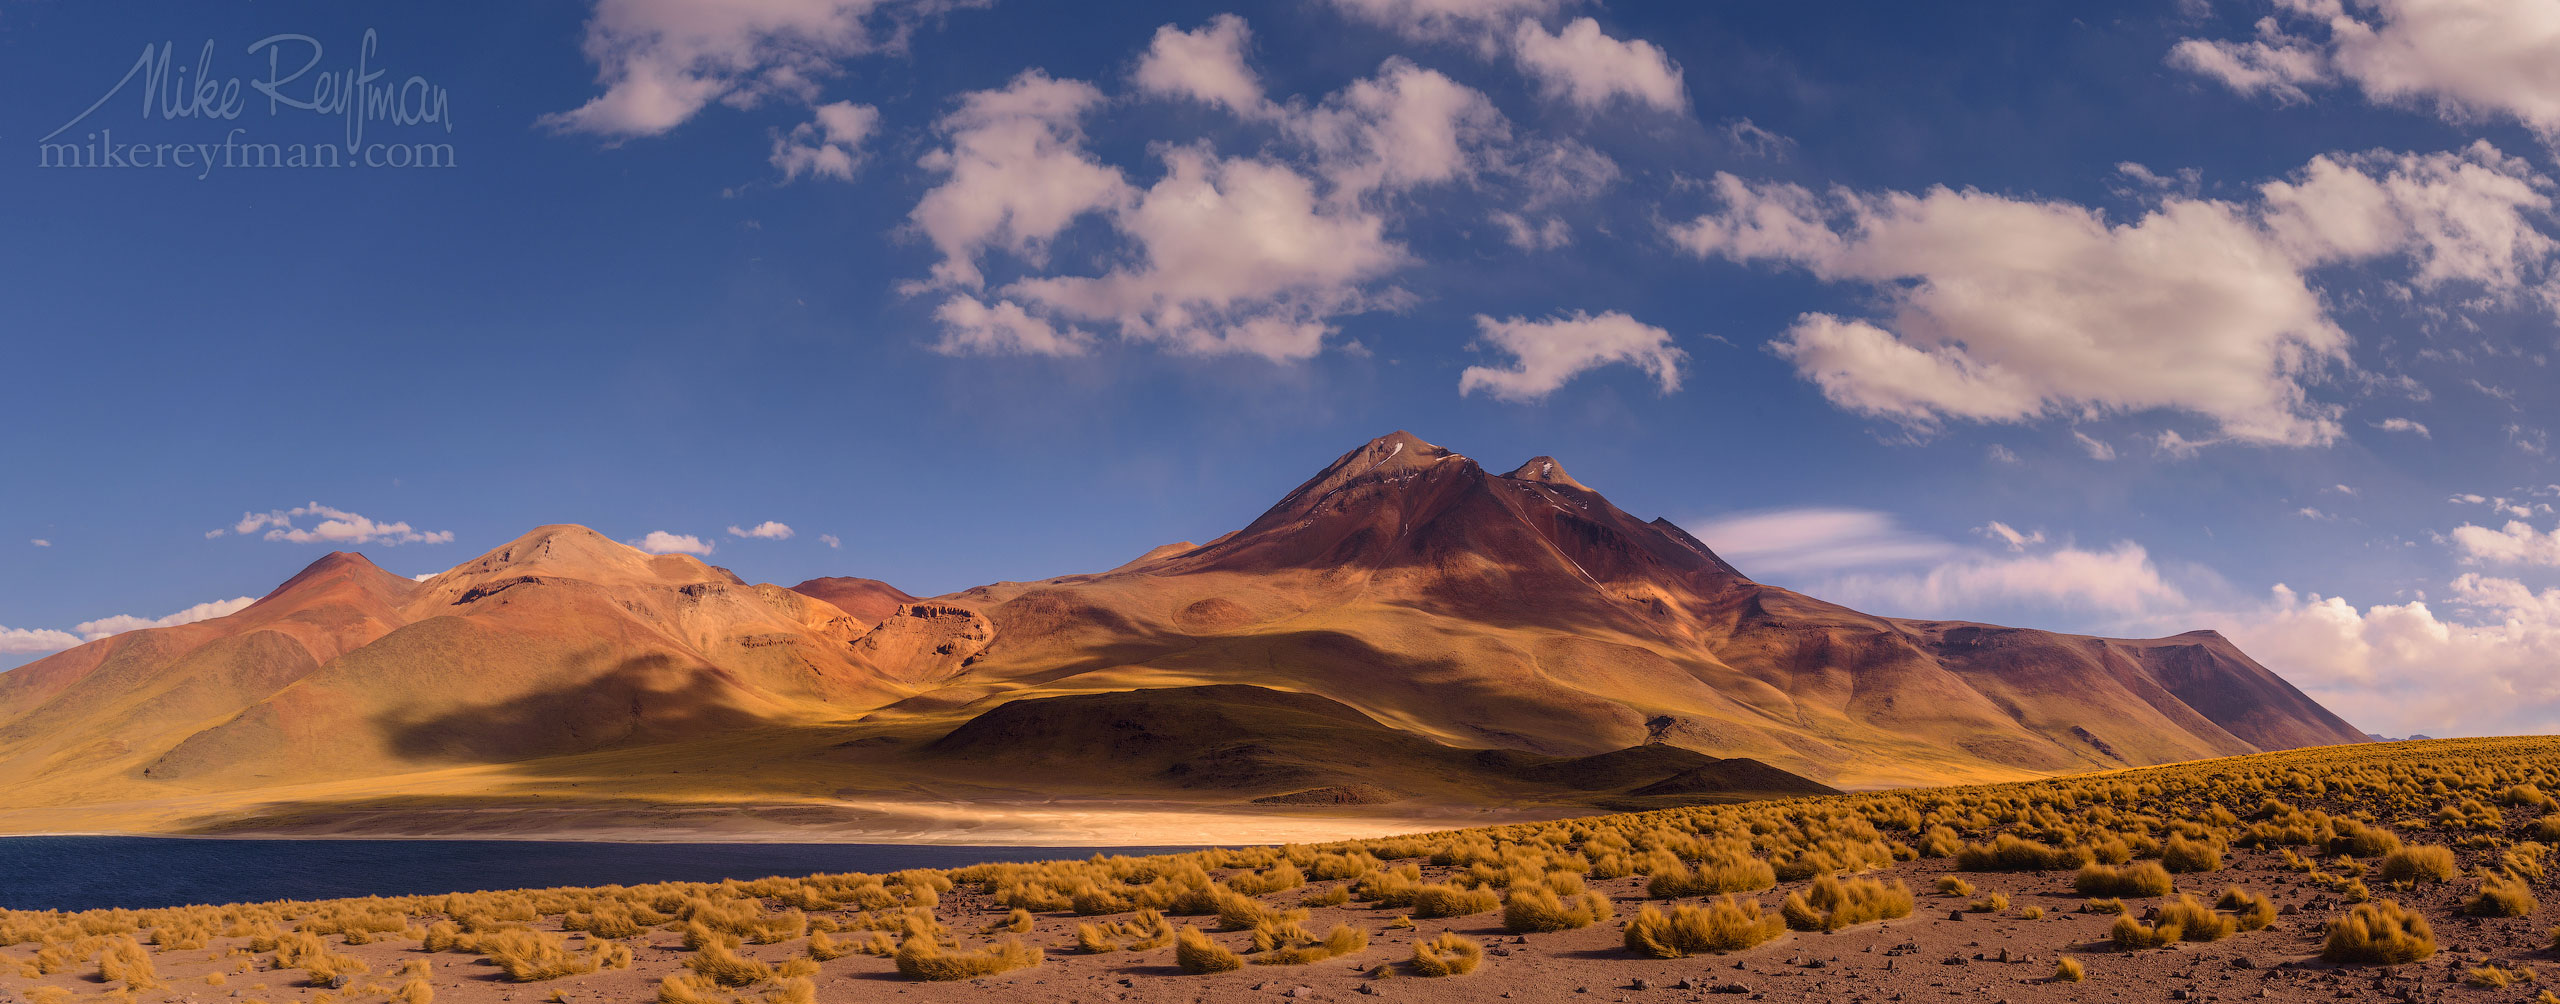 Laguna and volcano Miñiques. San Pedro de Atacama, Atacama Desert, Antofagasta Region, Chile AA1-D1D9609_Pano_1x2.55 - Atacama and Altiplano. The Driest Desert and The High Plain - Mike Reyfman Photography